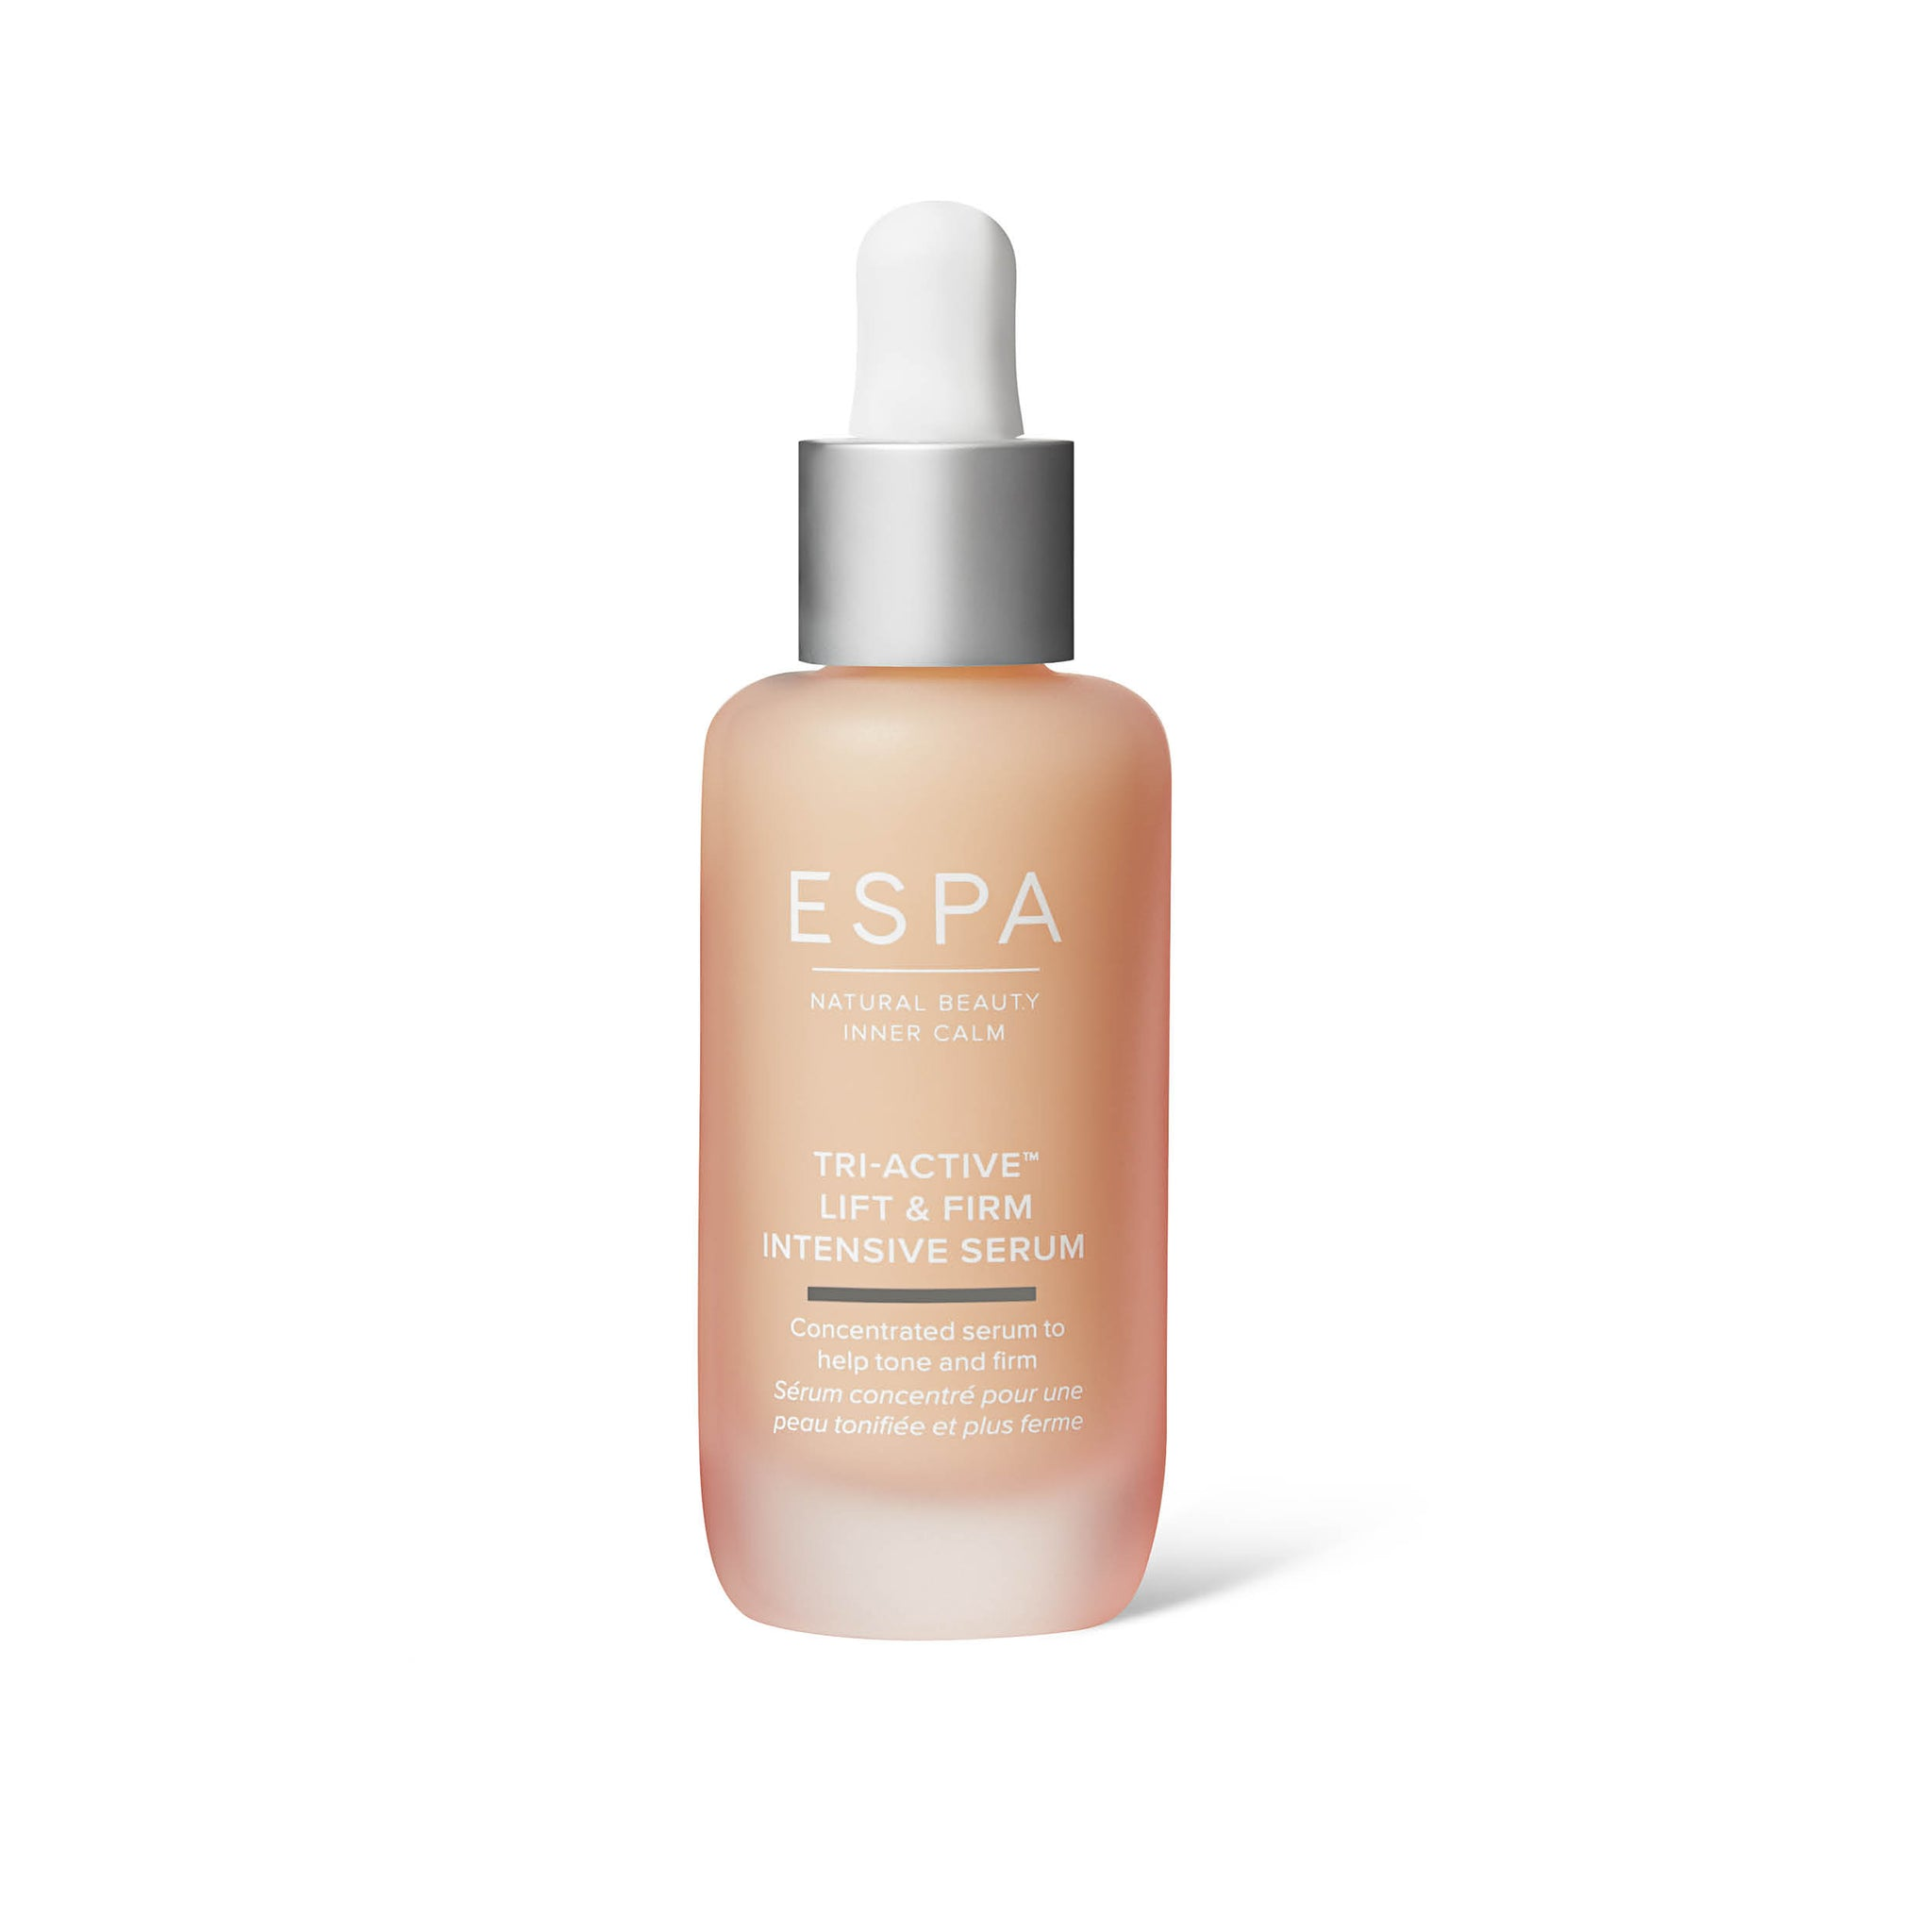 ESPA Tri-Active Lift & Firm Intensive Serum